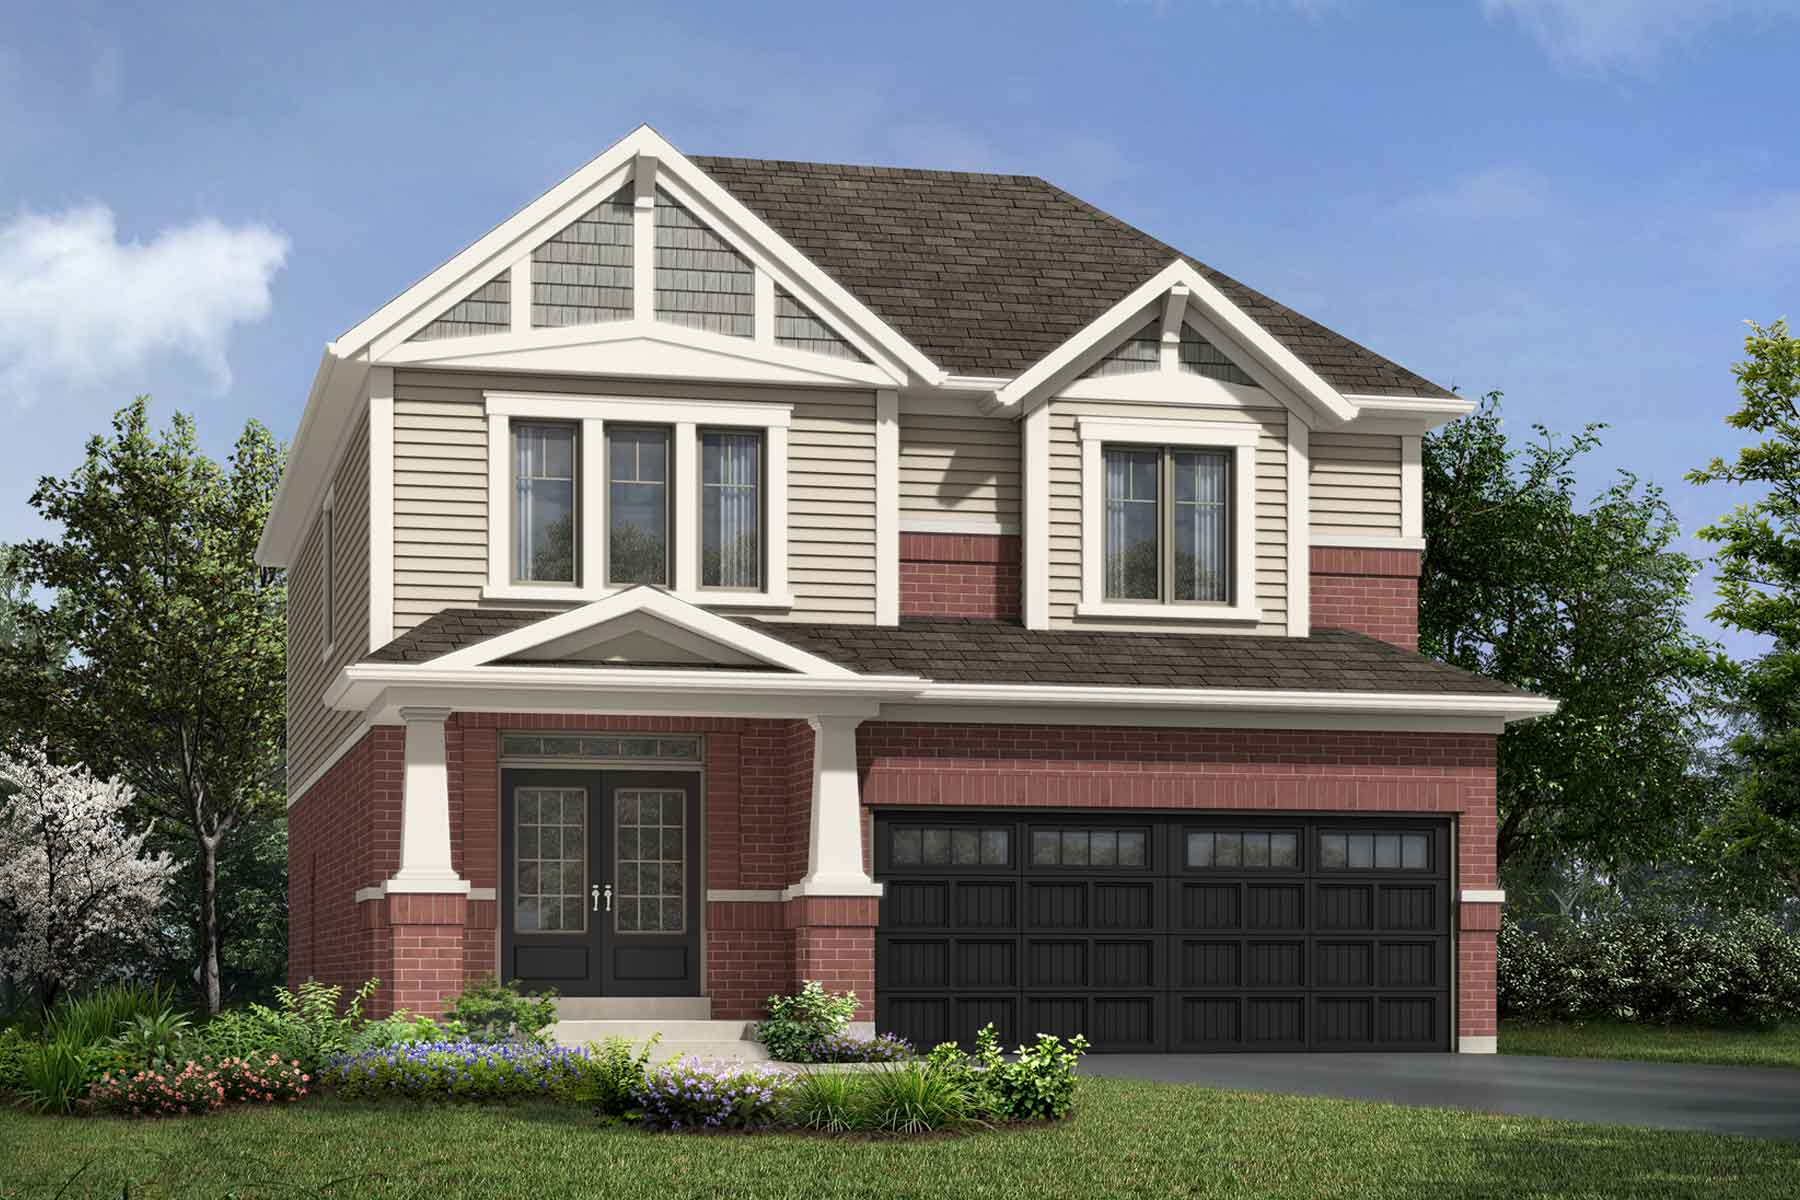 Granby Plan ElevationCraftsman_Soleil_Granby at Soleil in Milton Ontario by Mattamy Homes